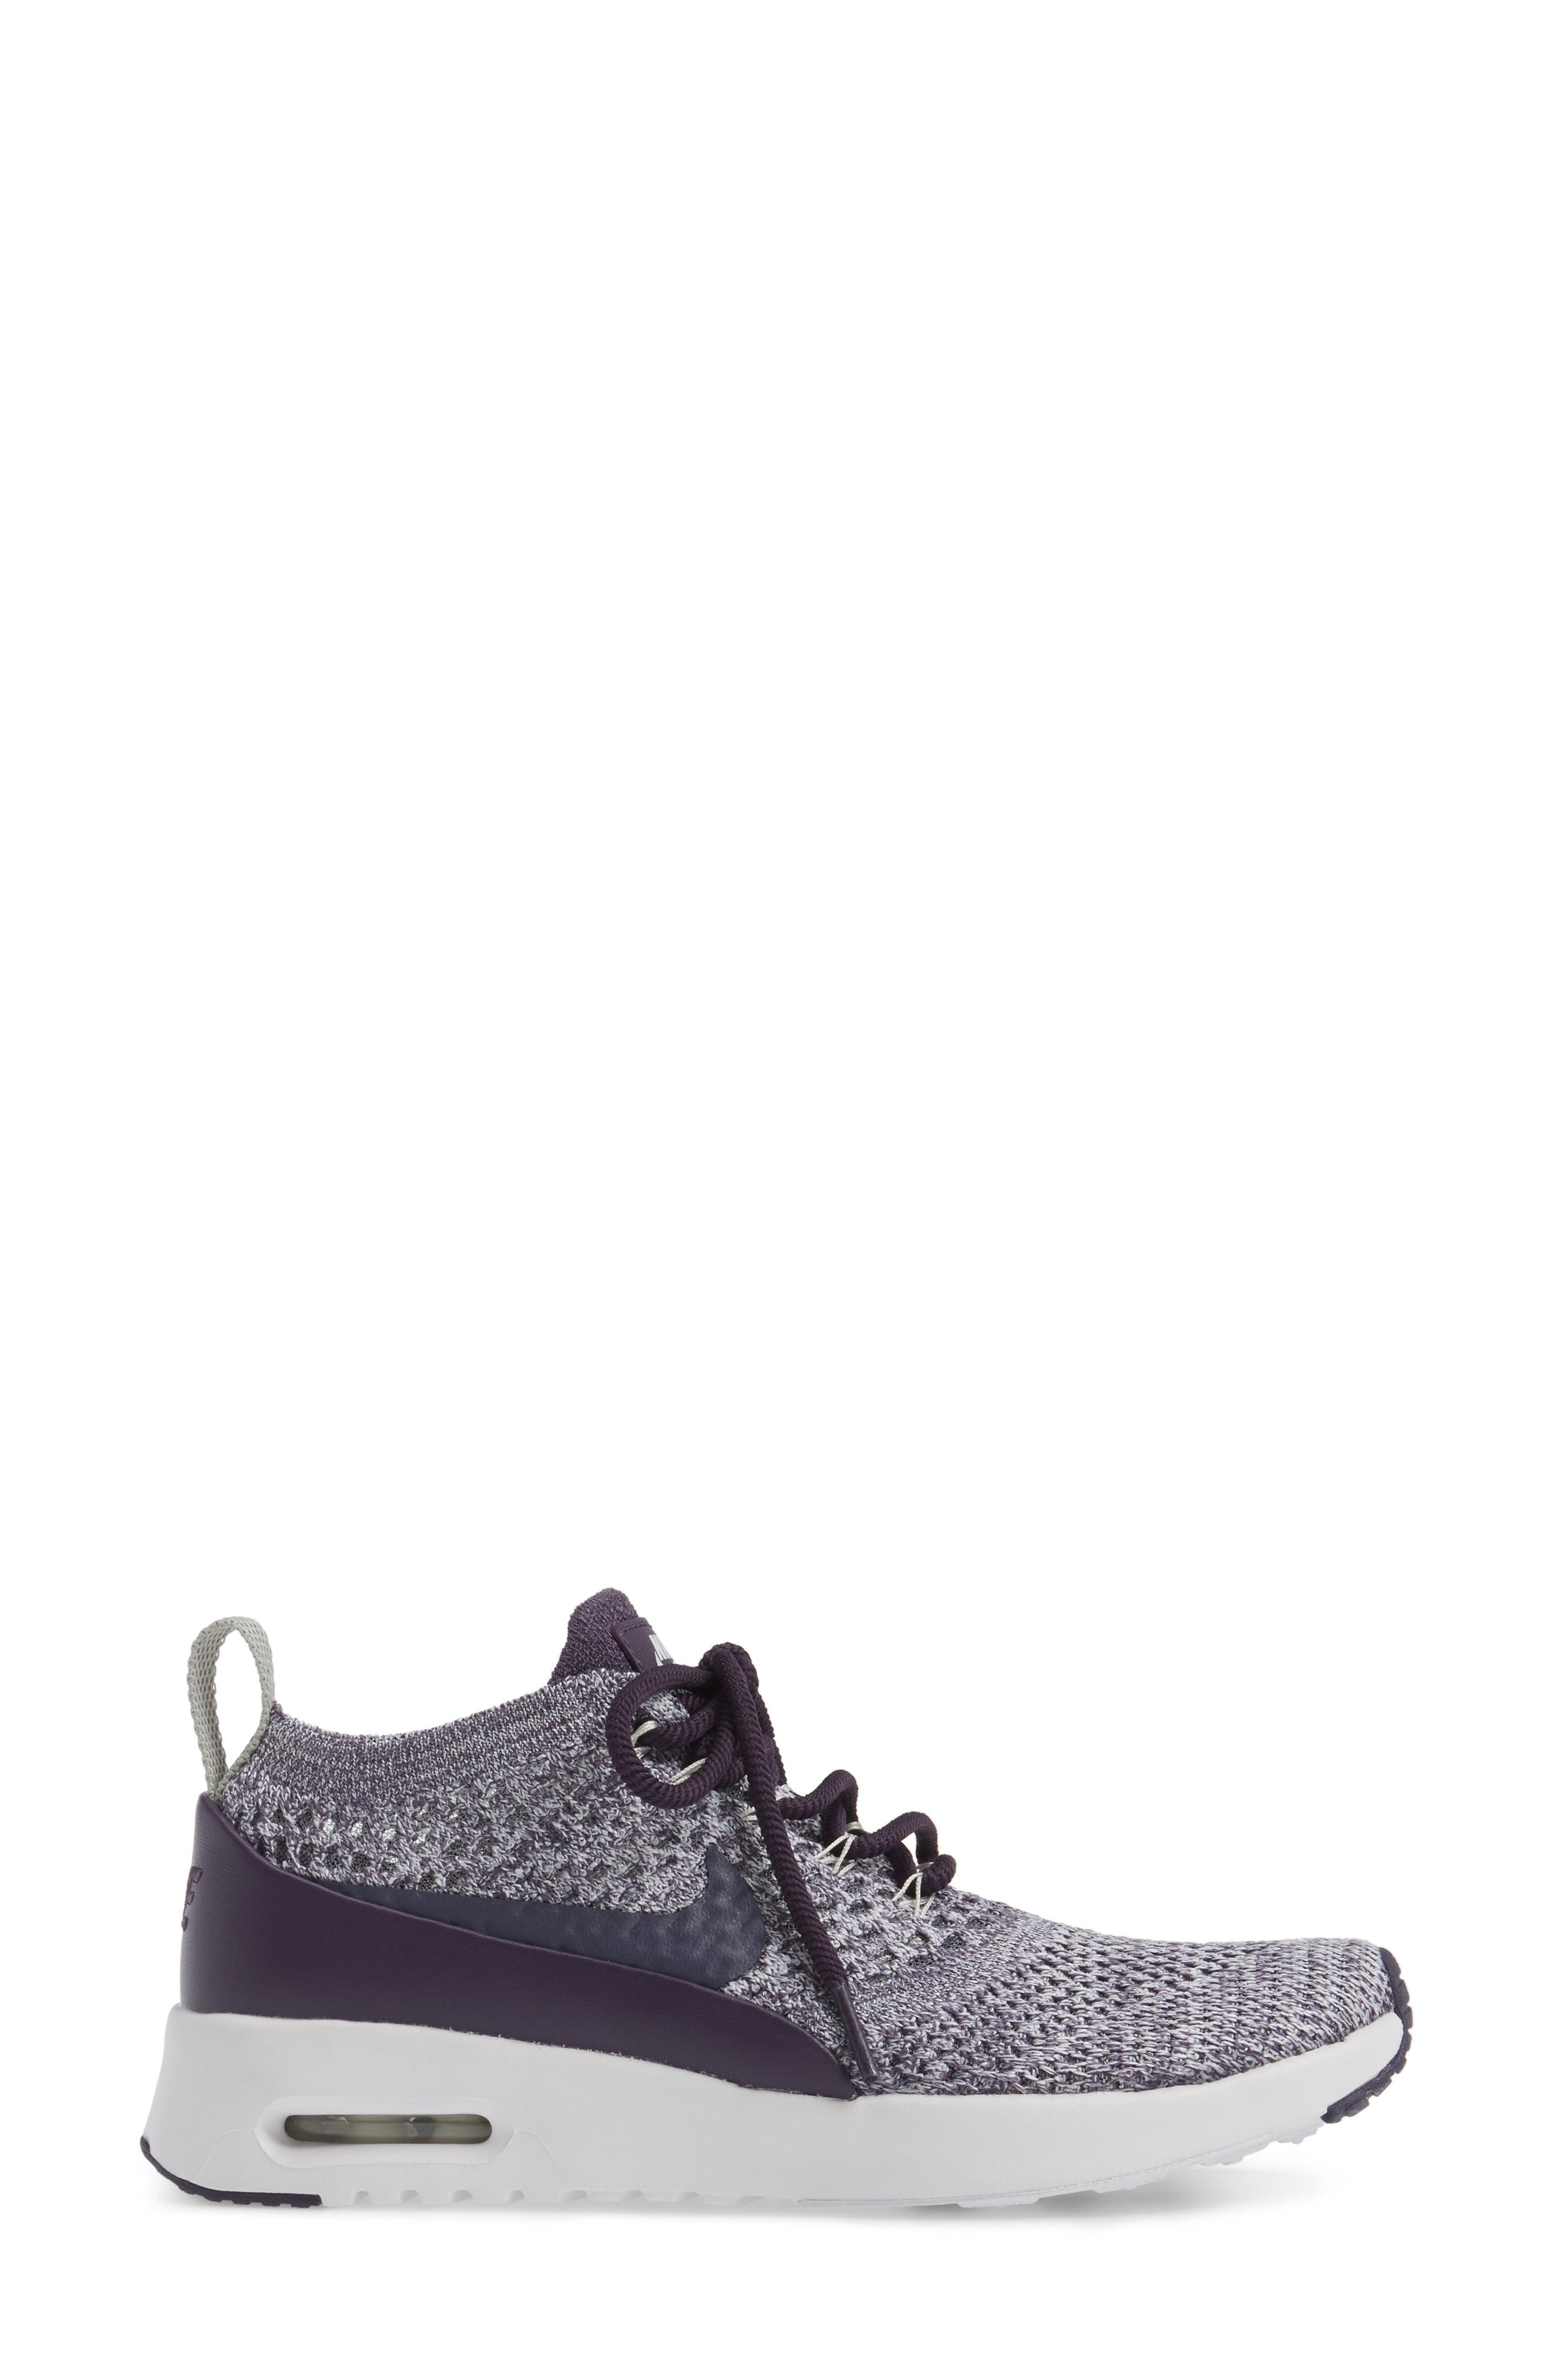 Air Max Thea Ultra Flyknit Sneaker,                             Alternate thumbnail 34, color,